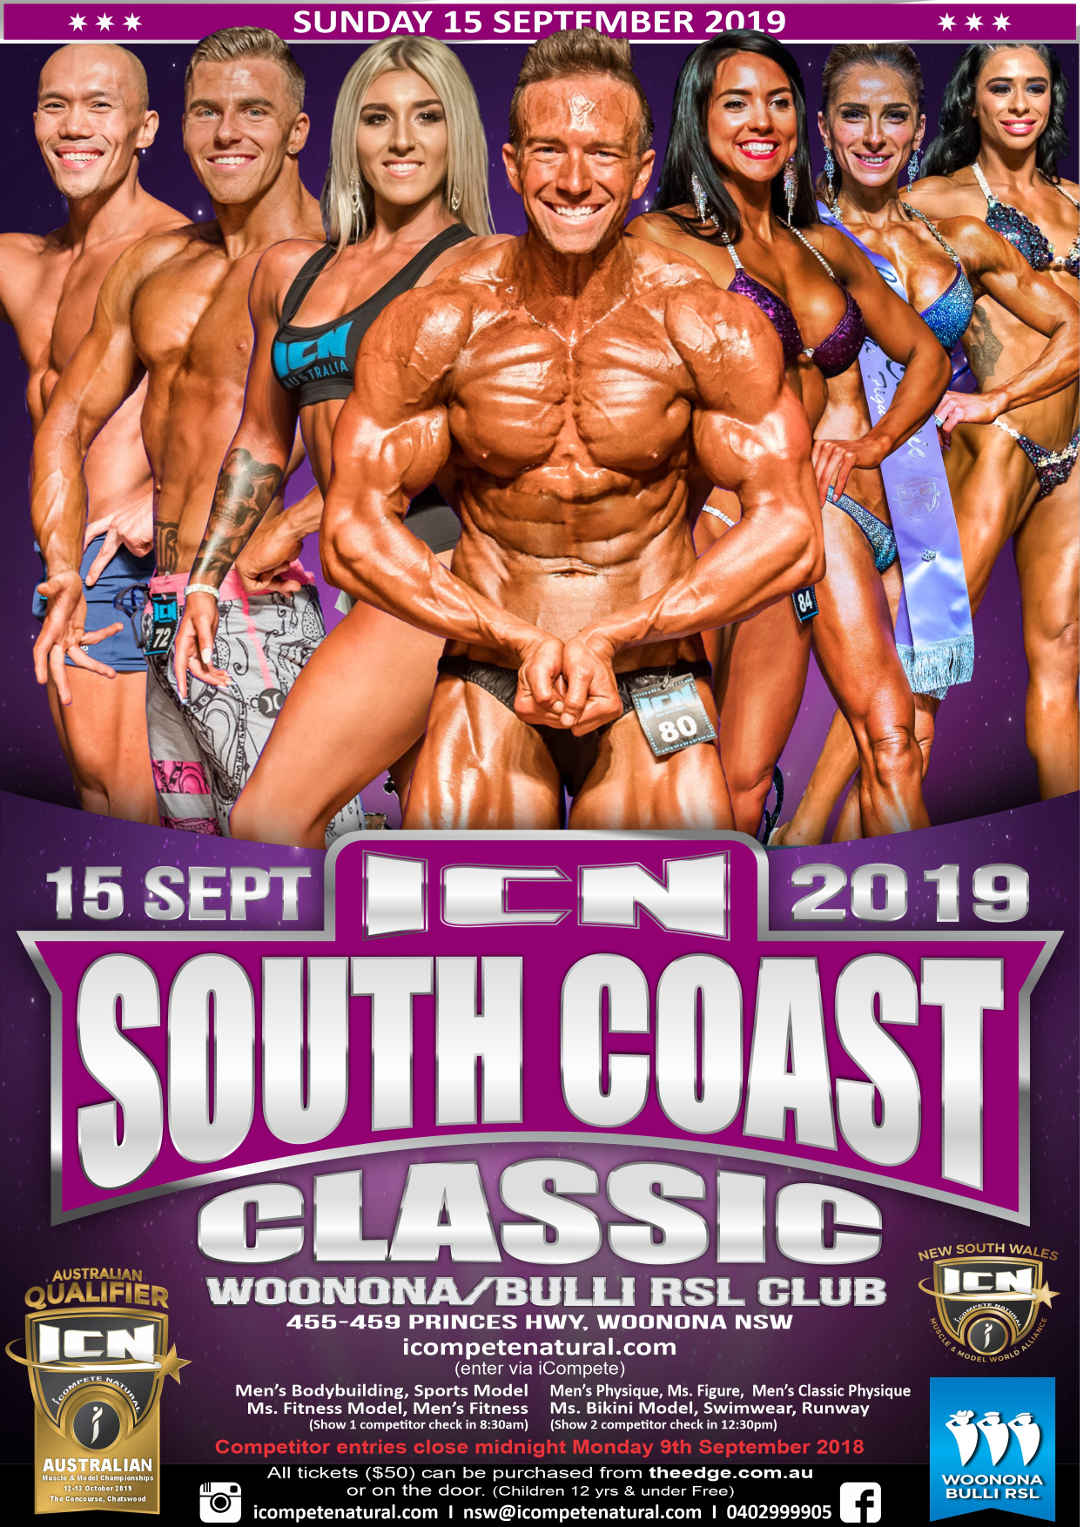 South Coast Classic 2019 Poster